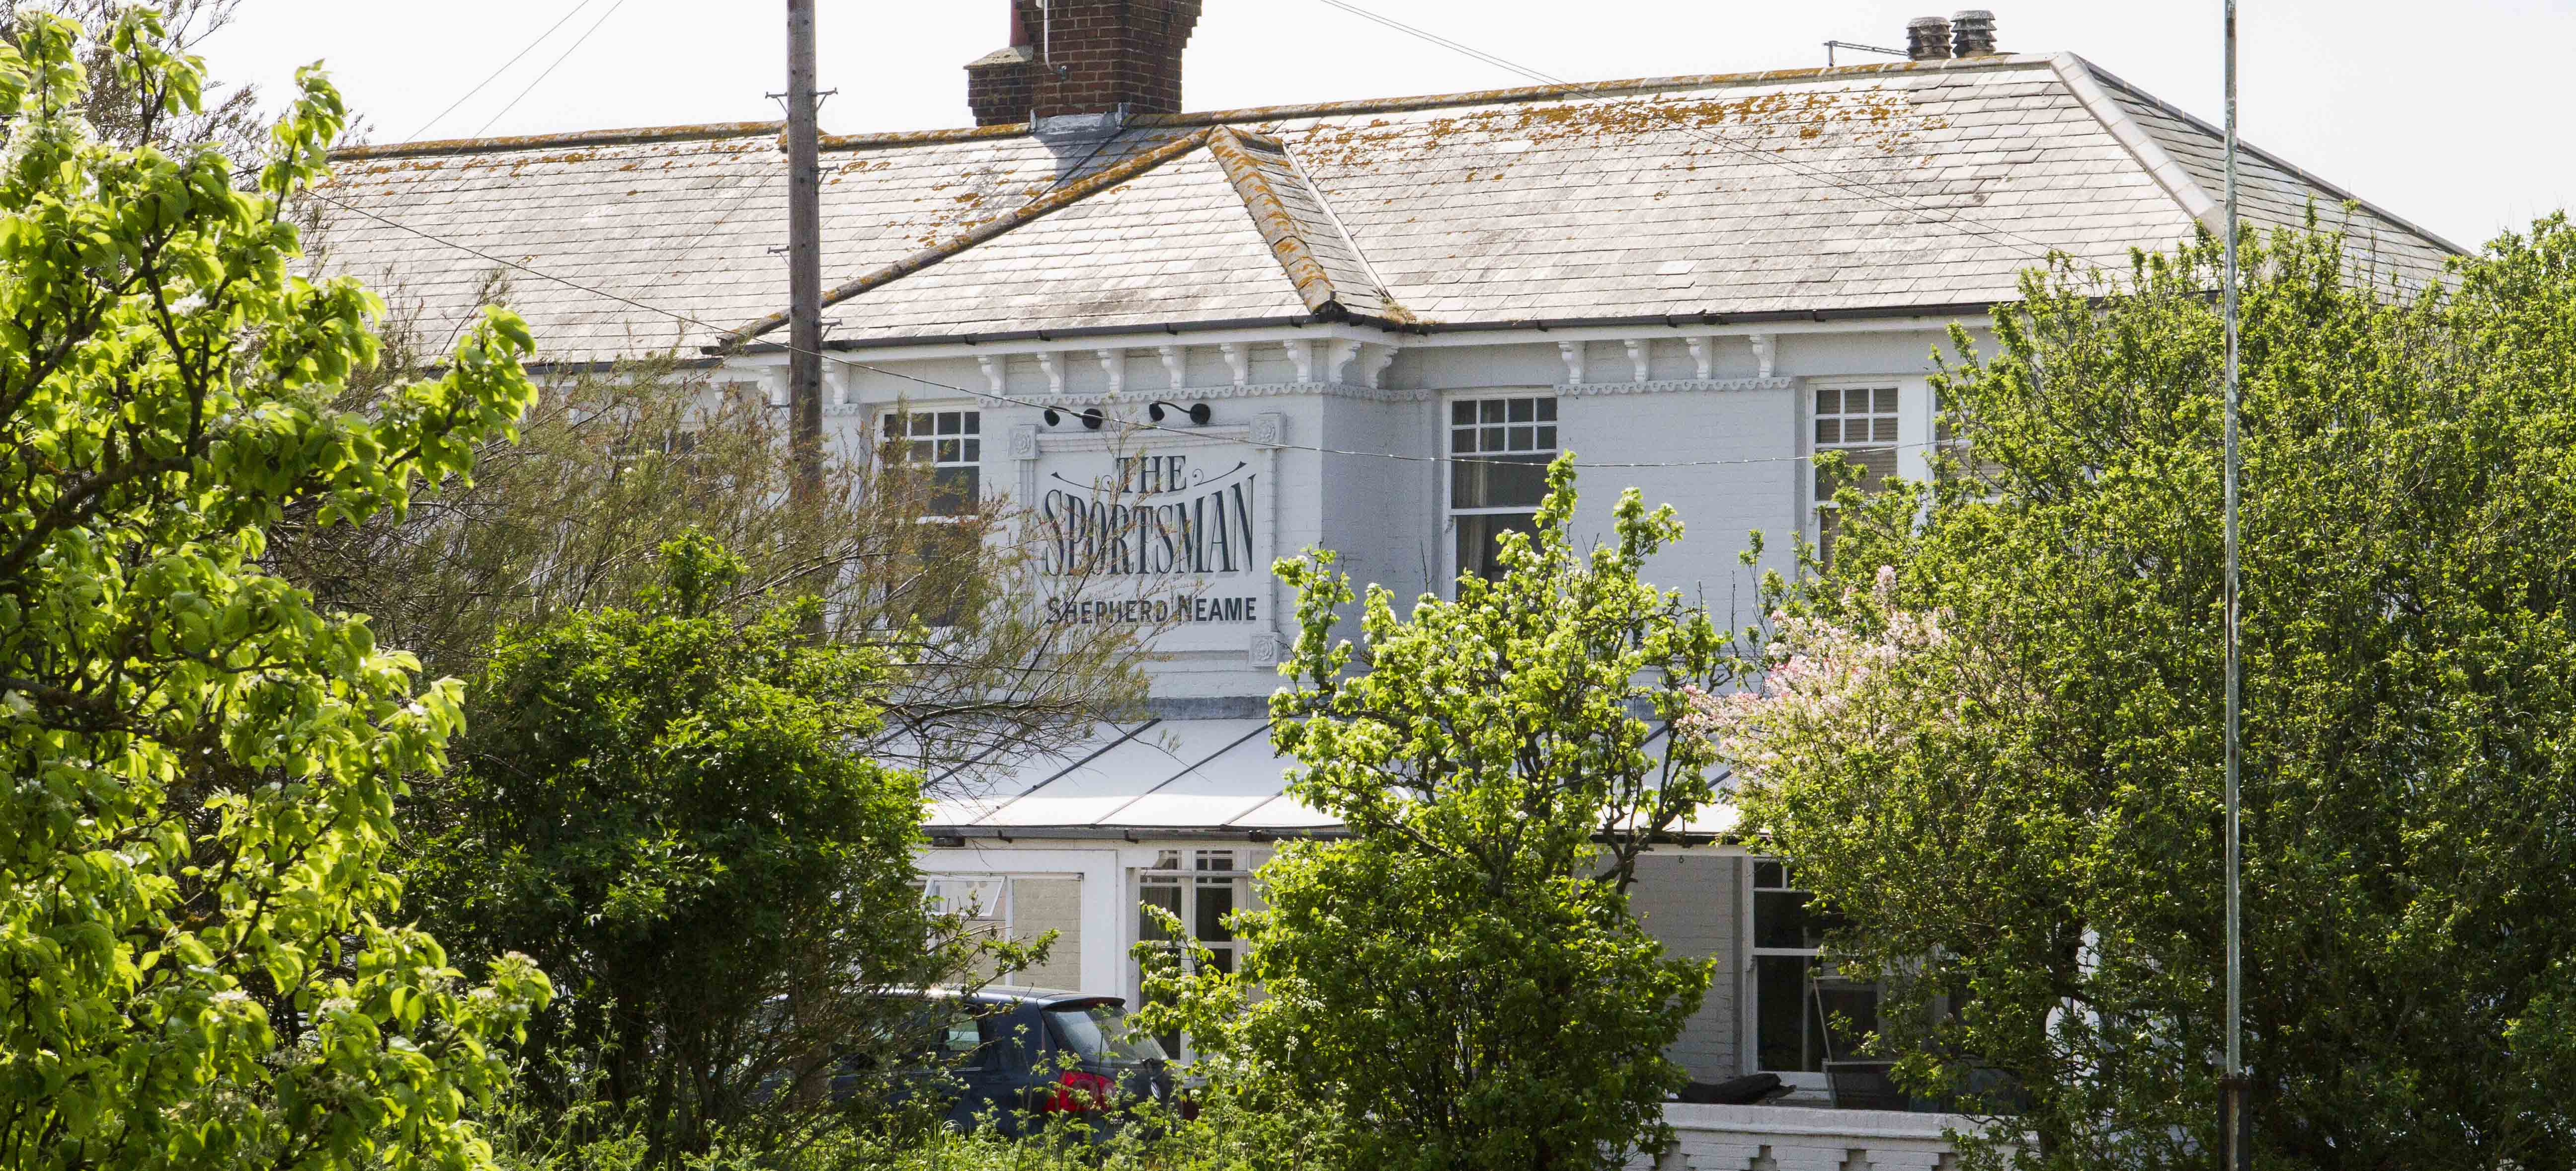 Best places to eat and drink in and around whitstable olive thornback ray or whitstable native oysters at their best in july puddings are outstanding we liked the apple souffl with salted caramel ice cream malvernweather Choice Image